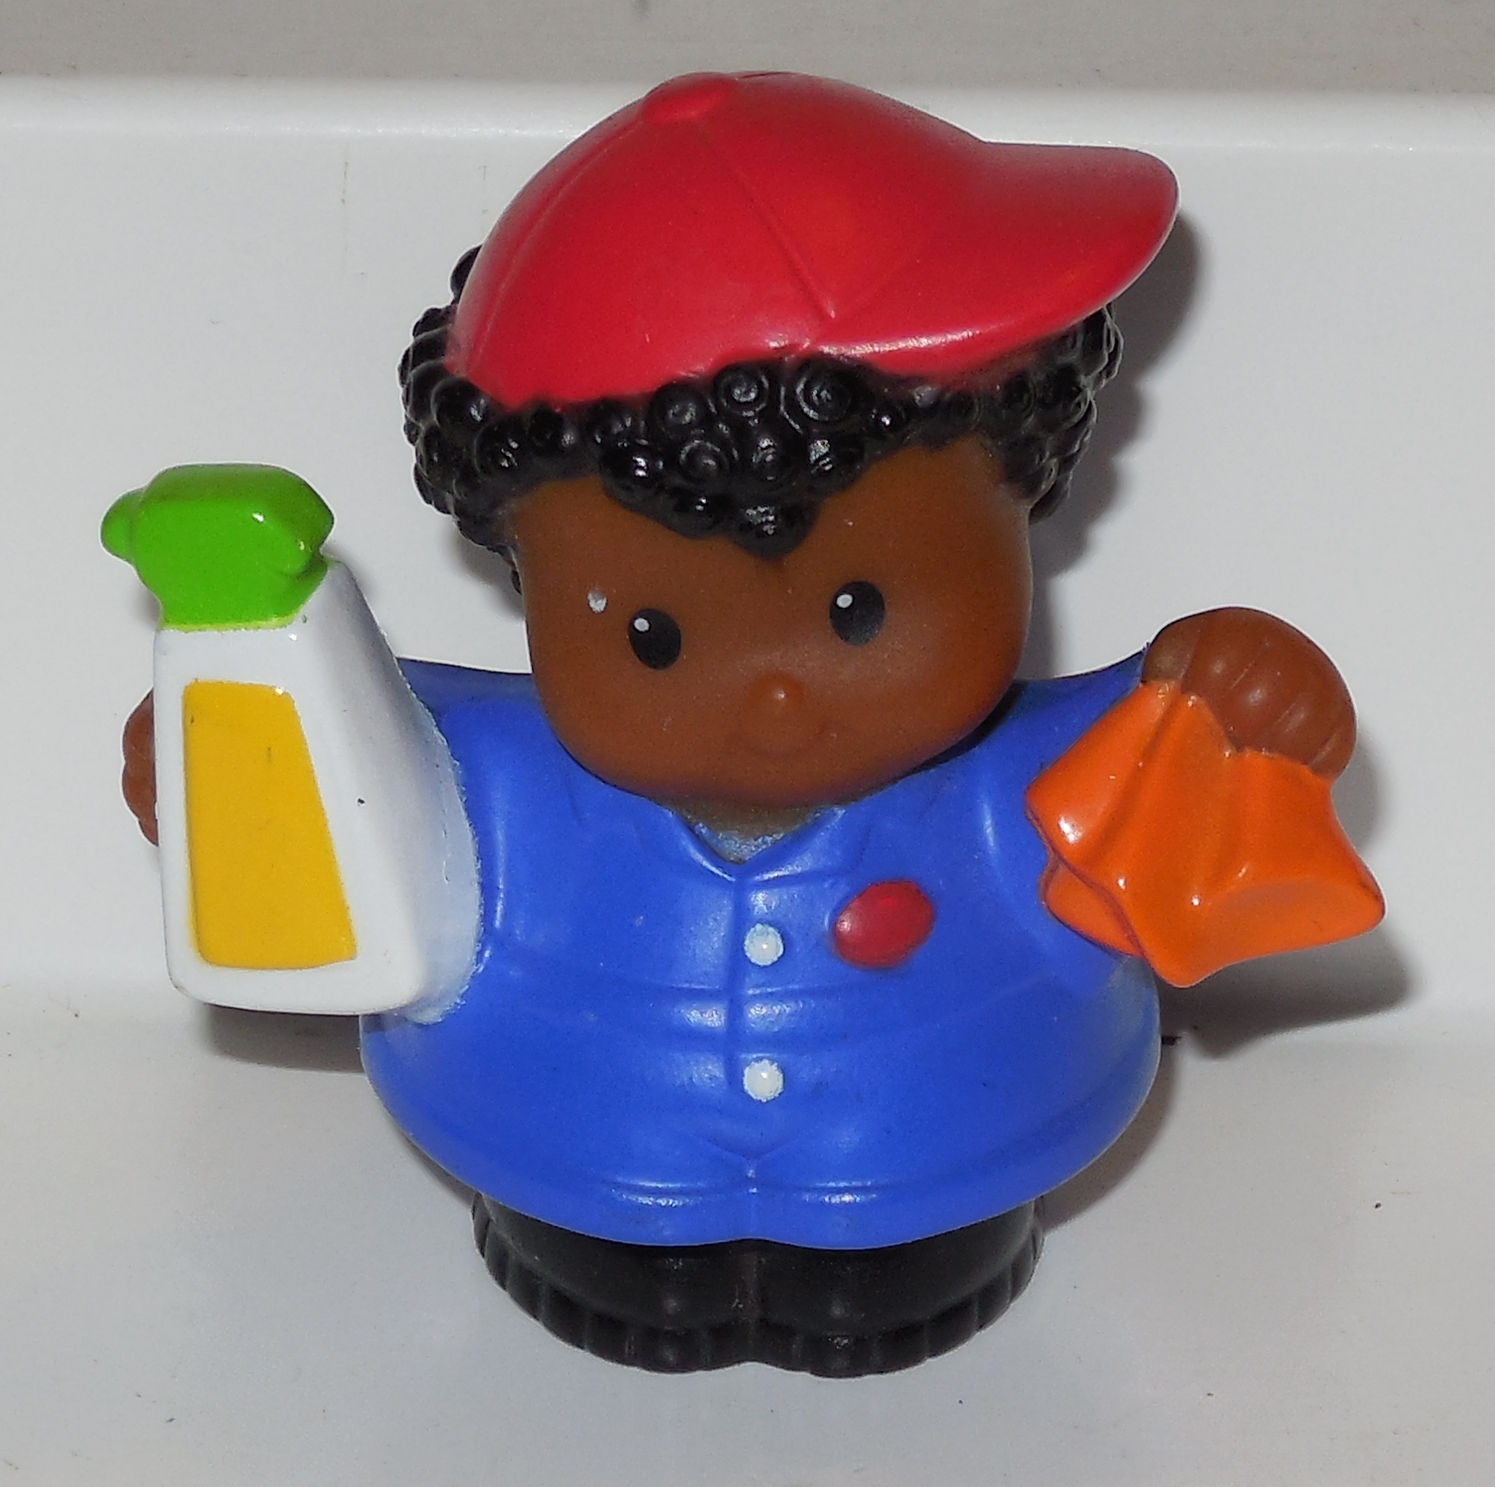 Fisher Price Current Little People Boy FPLP #6